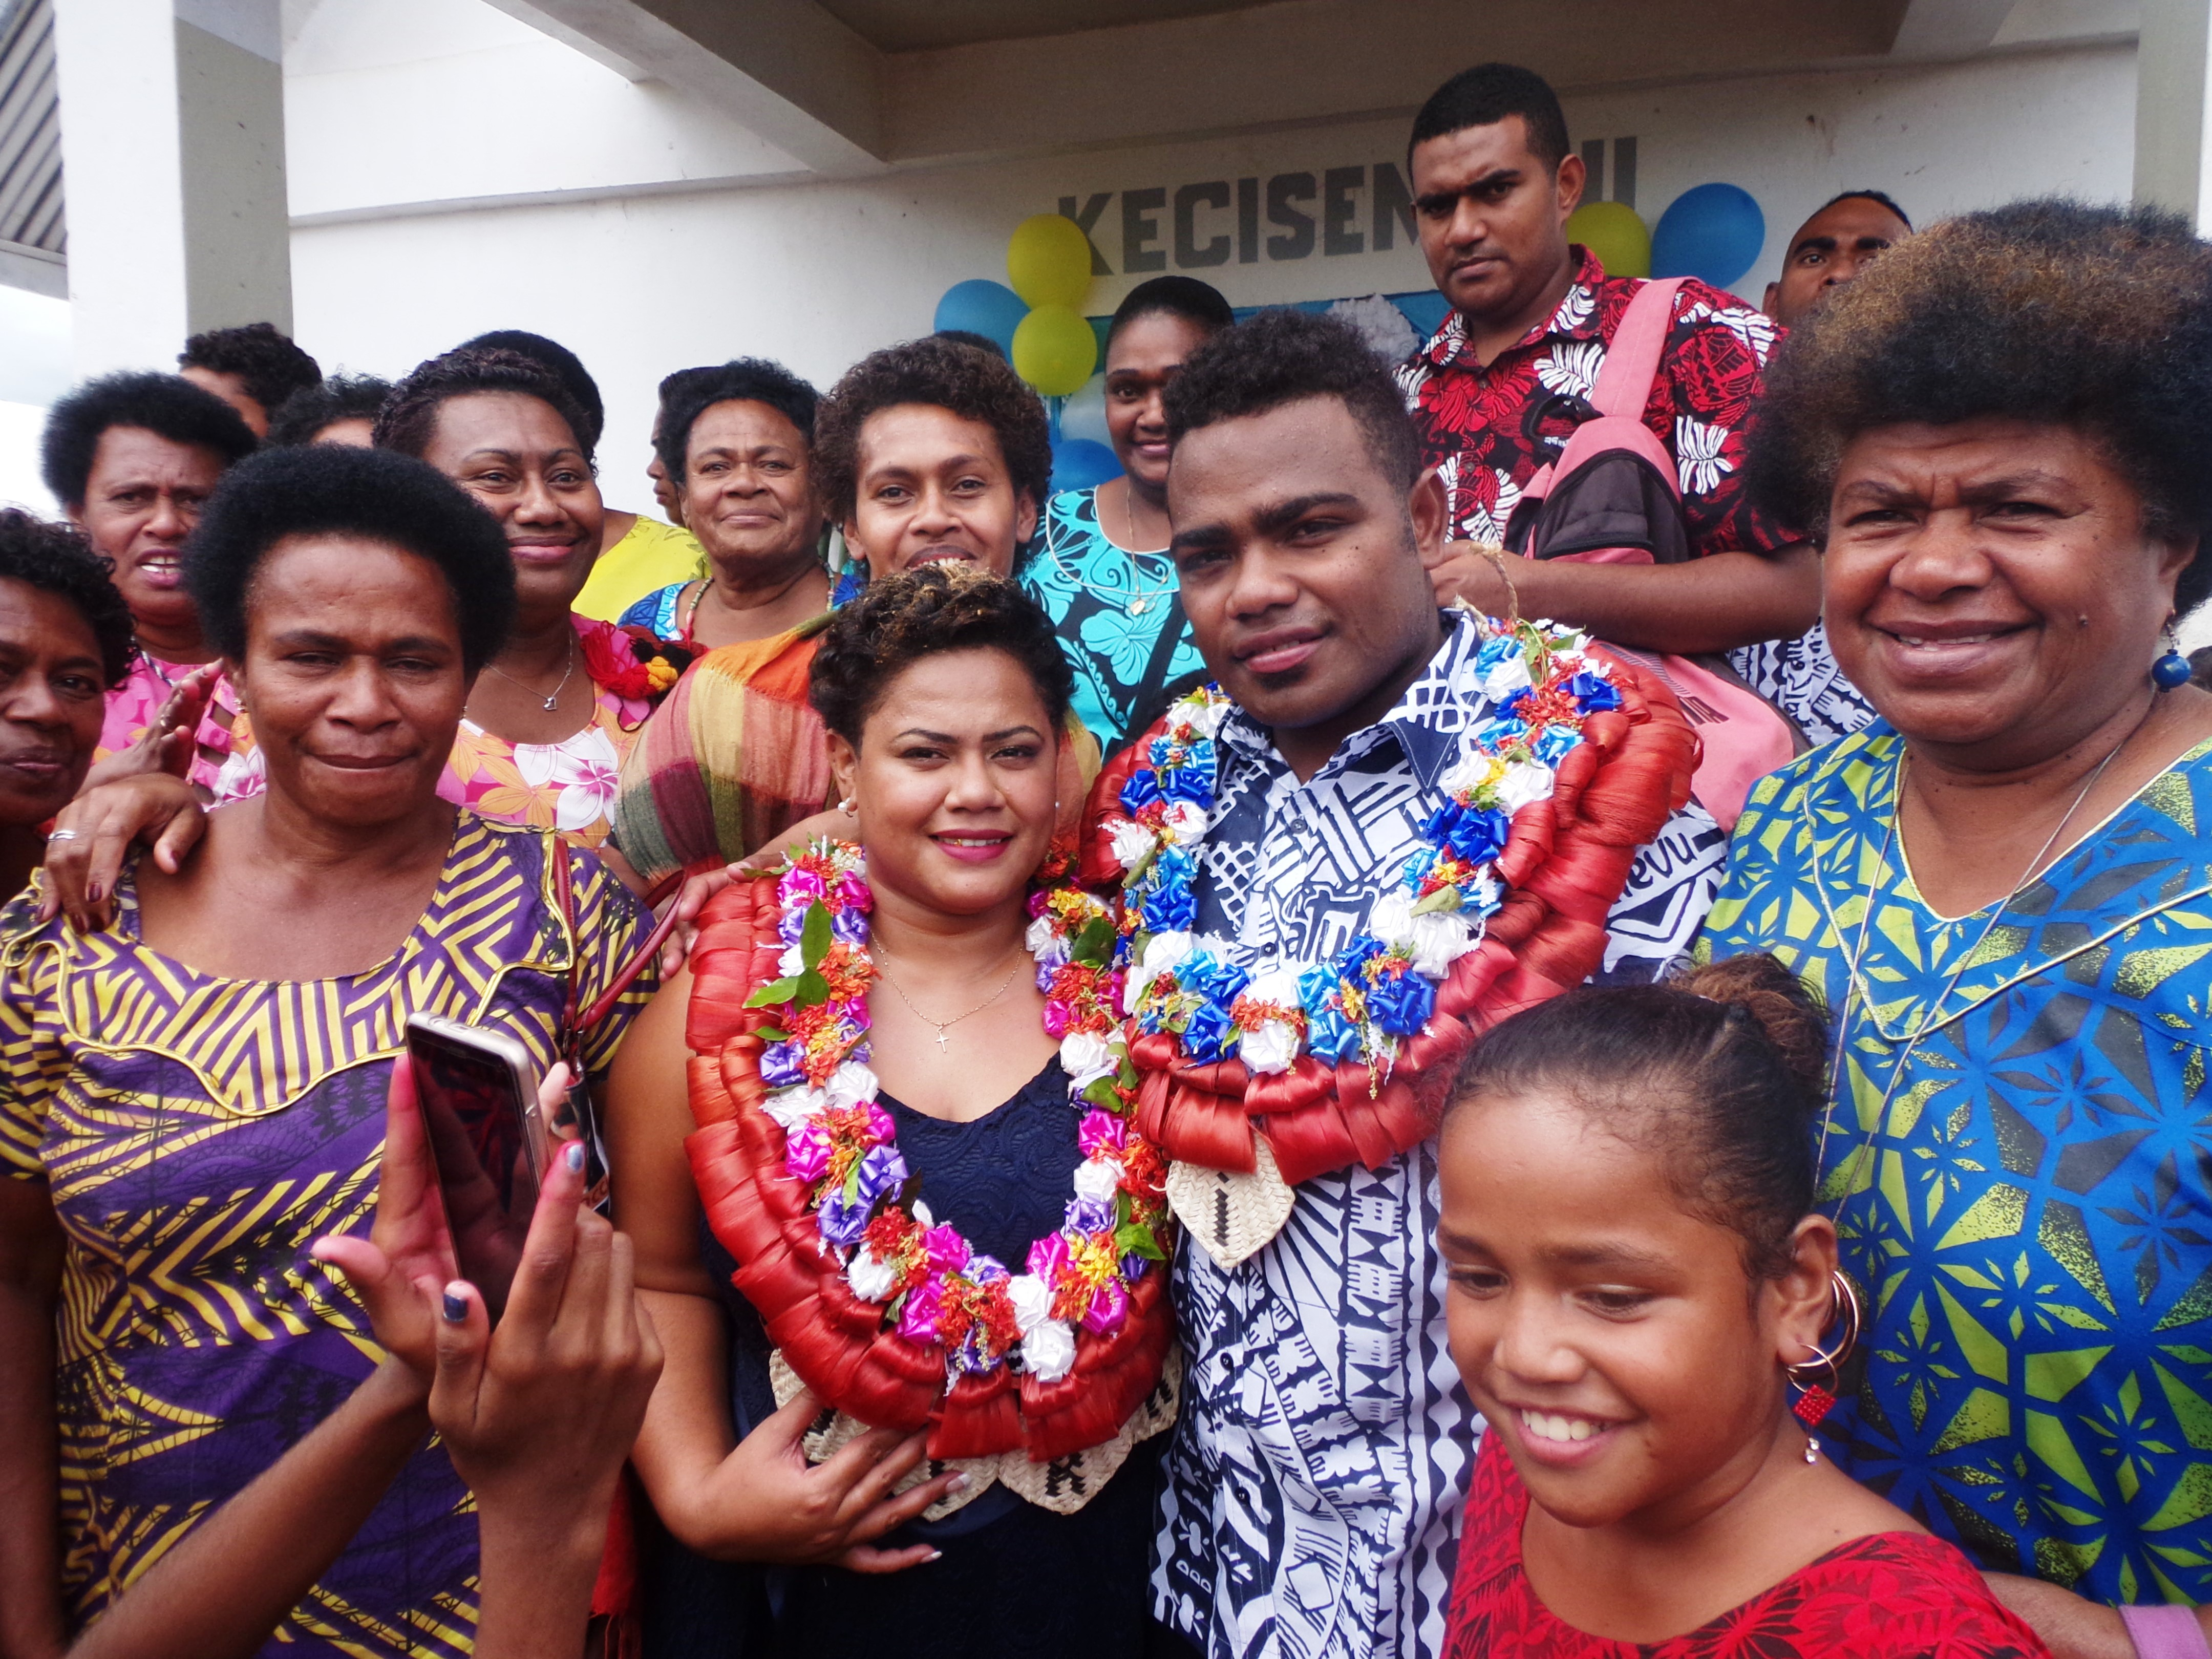 Filipo Nakosi with wife Vika and their relatives in Votua Village in Ba on June 29, 2018. Photo: Peni Komaisavai